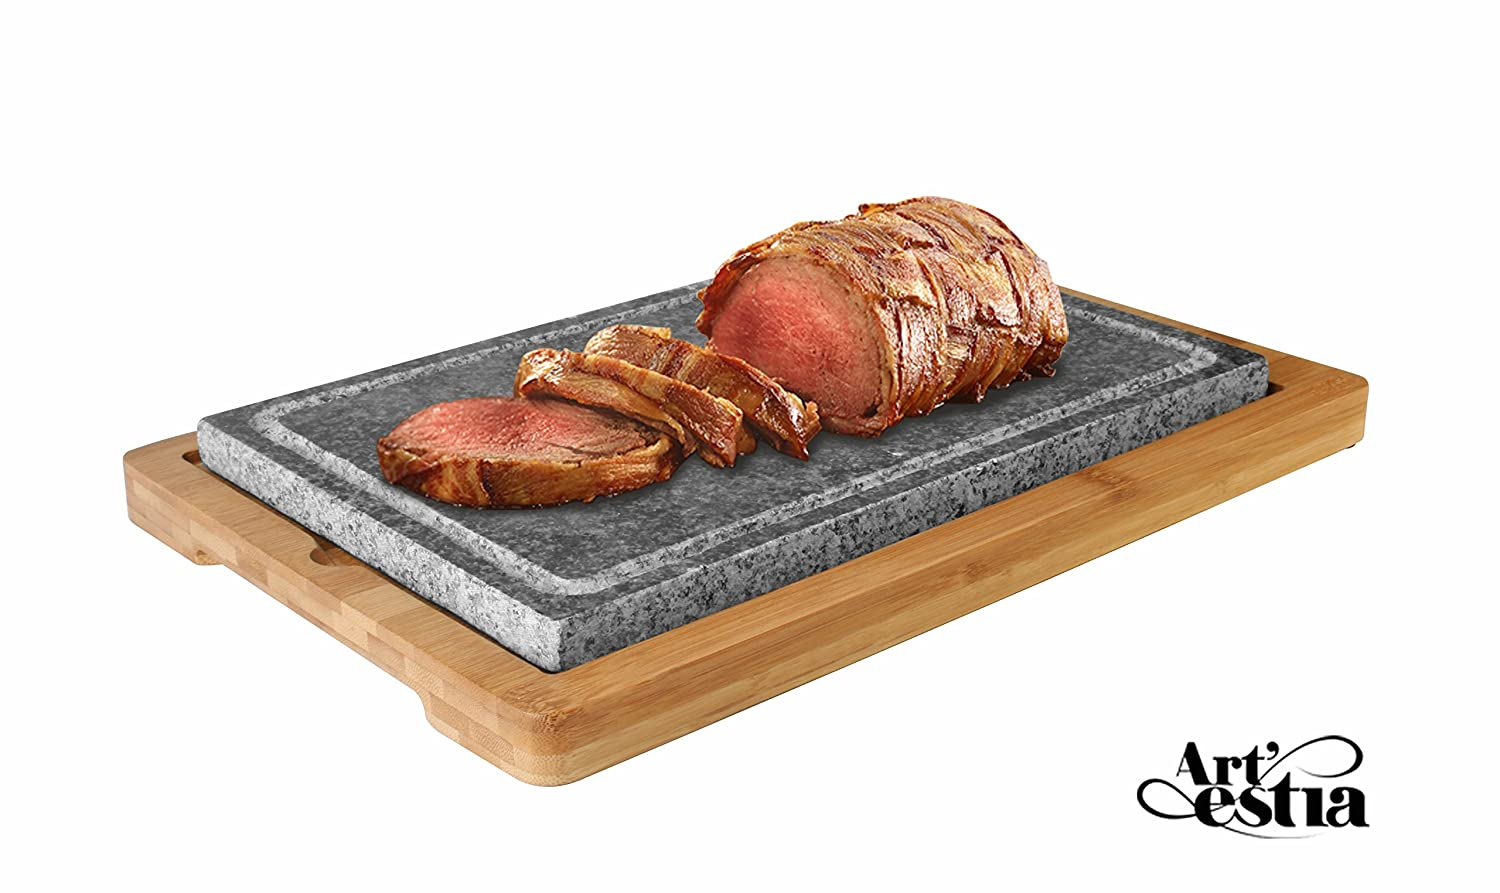 Artestia Mega Size Cooking Stone Sizzling Hot Stone Set with Stainless Steel Tray and Bamboo Platter, Deluxe Tabletop Barbecue/BBQ/Hibachi/Steak Grill (Deluxe Set with Mega Stone)